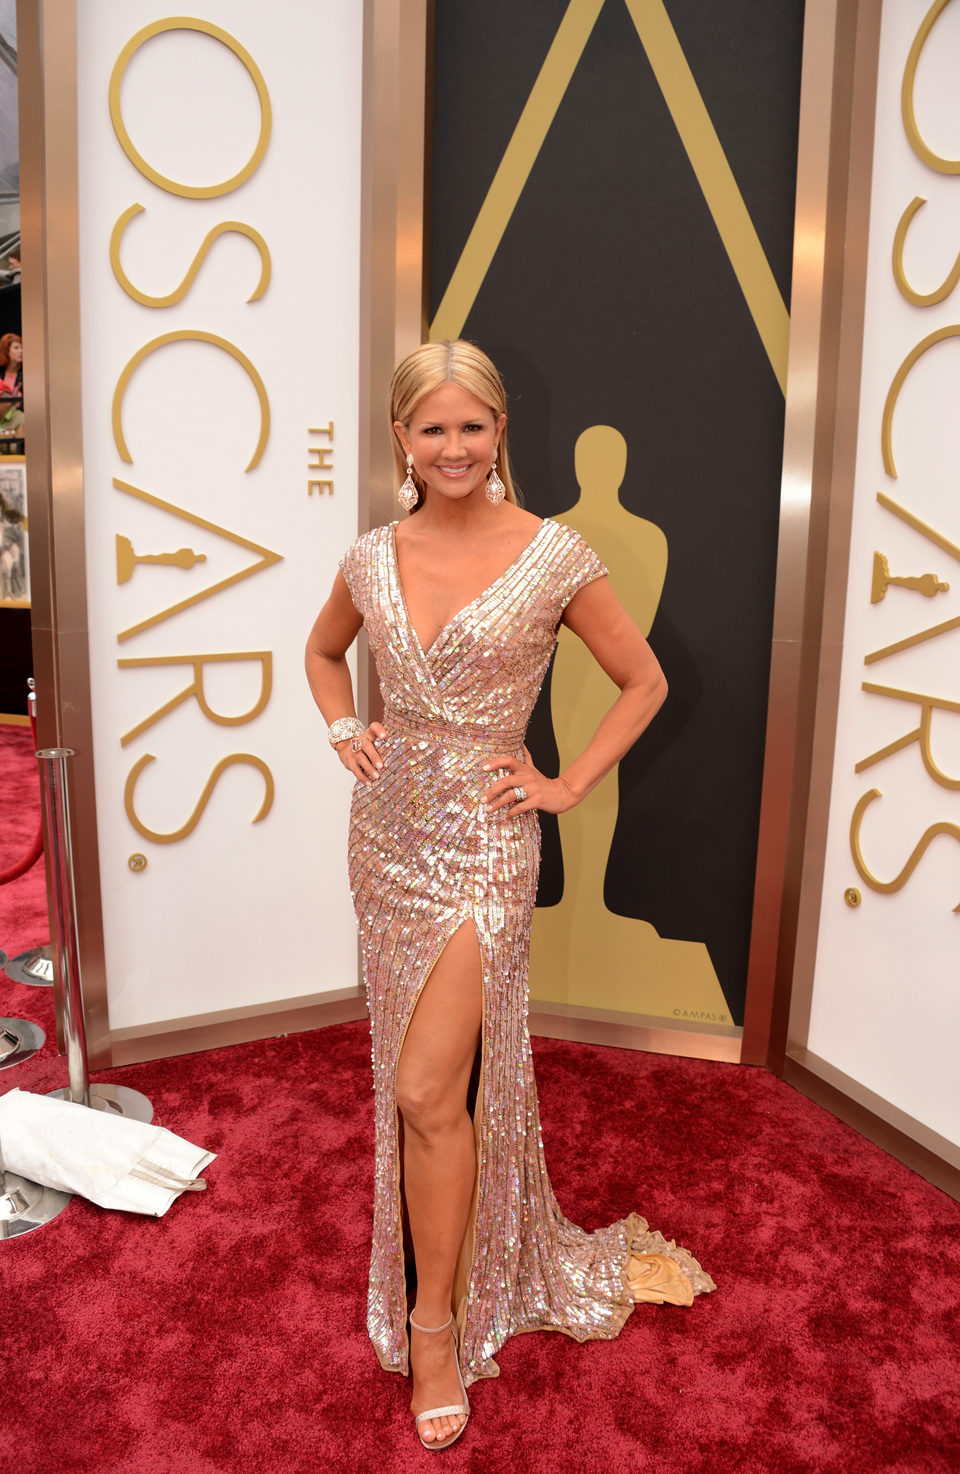 Nancy O'Dell at the 2014 Academy Awards